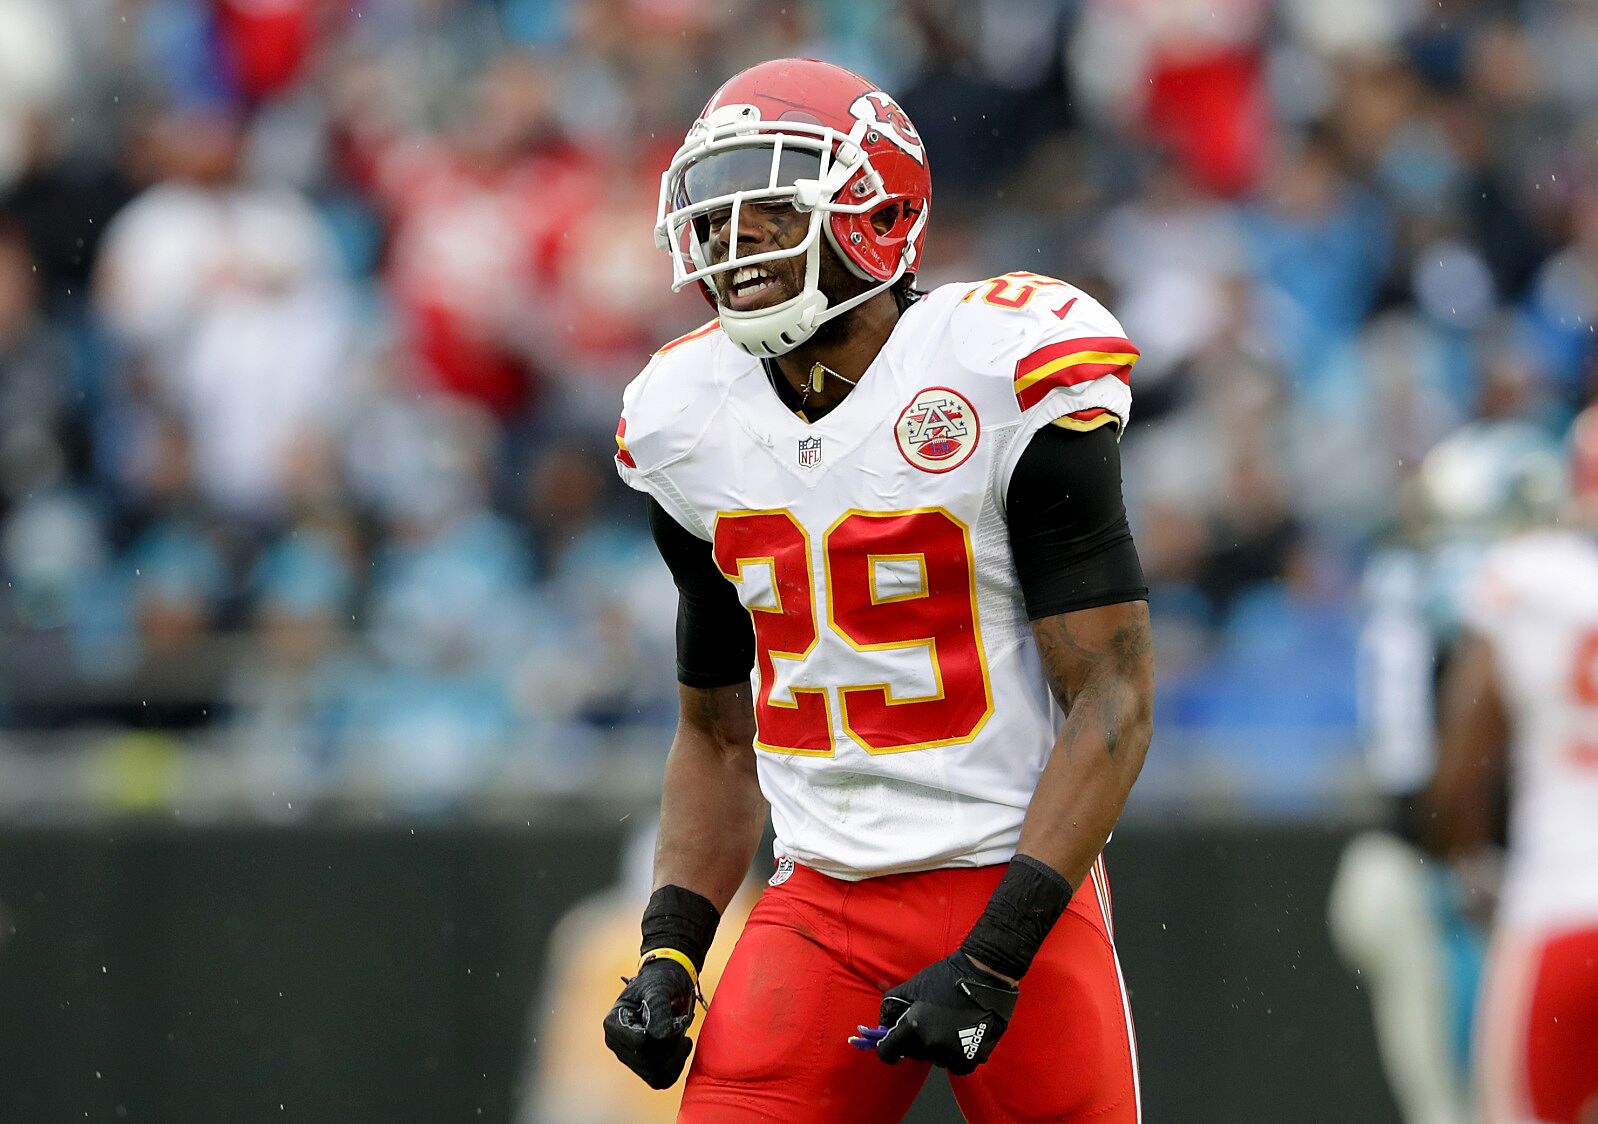 57adacdbd73 CHARLOTTE, NC – NOVEMBER 13: Eric Berry #29 of the Kansas City Chiefs  reacts after a play against the Carolina Panthers in the 1st quarter during  their game ...